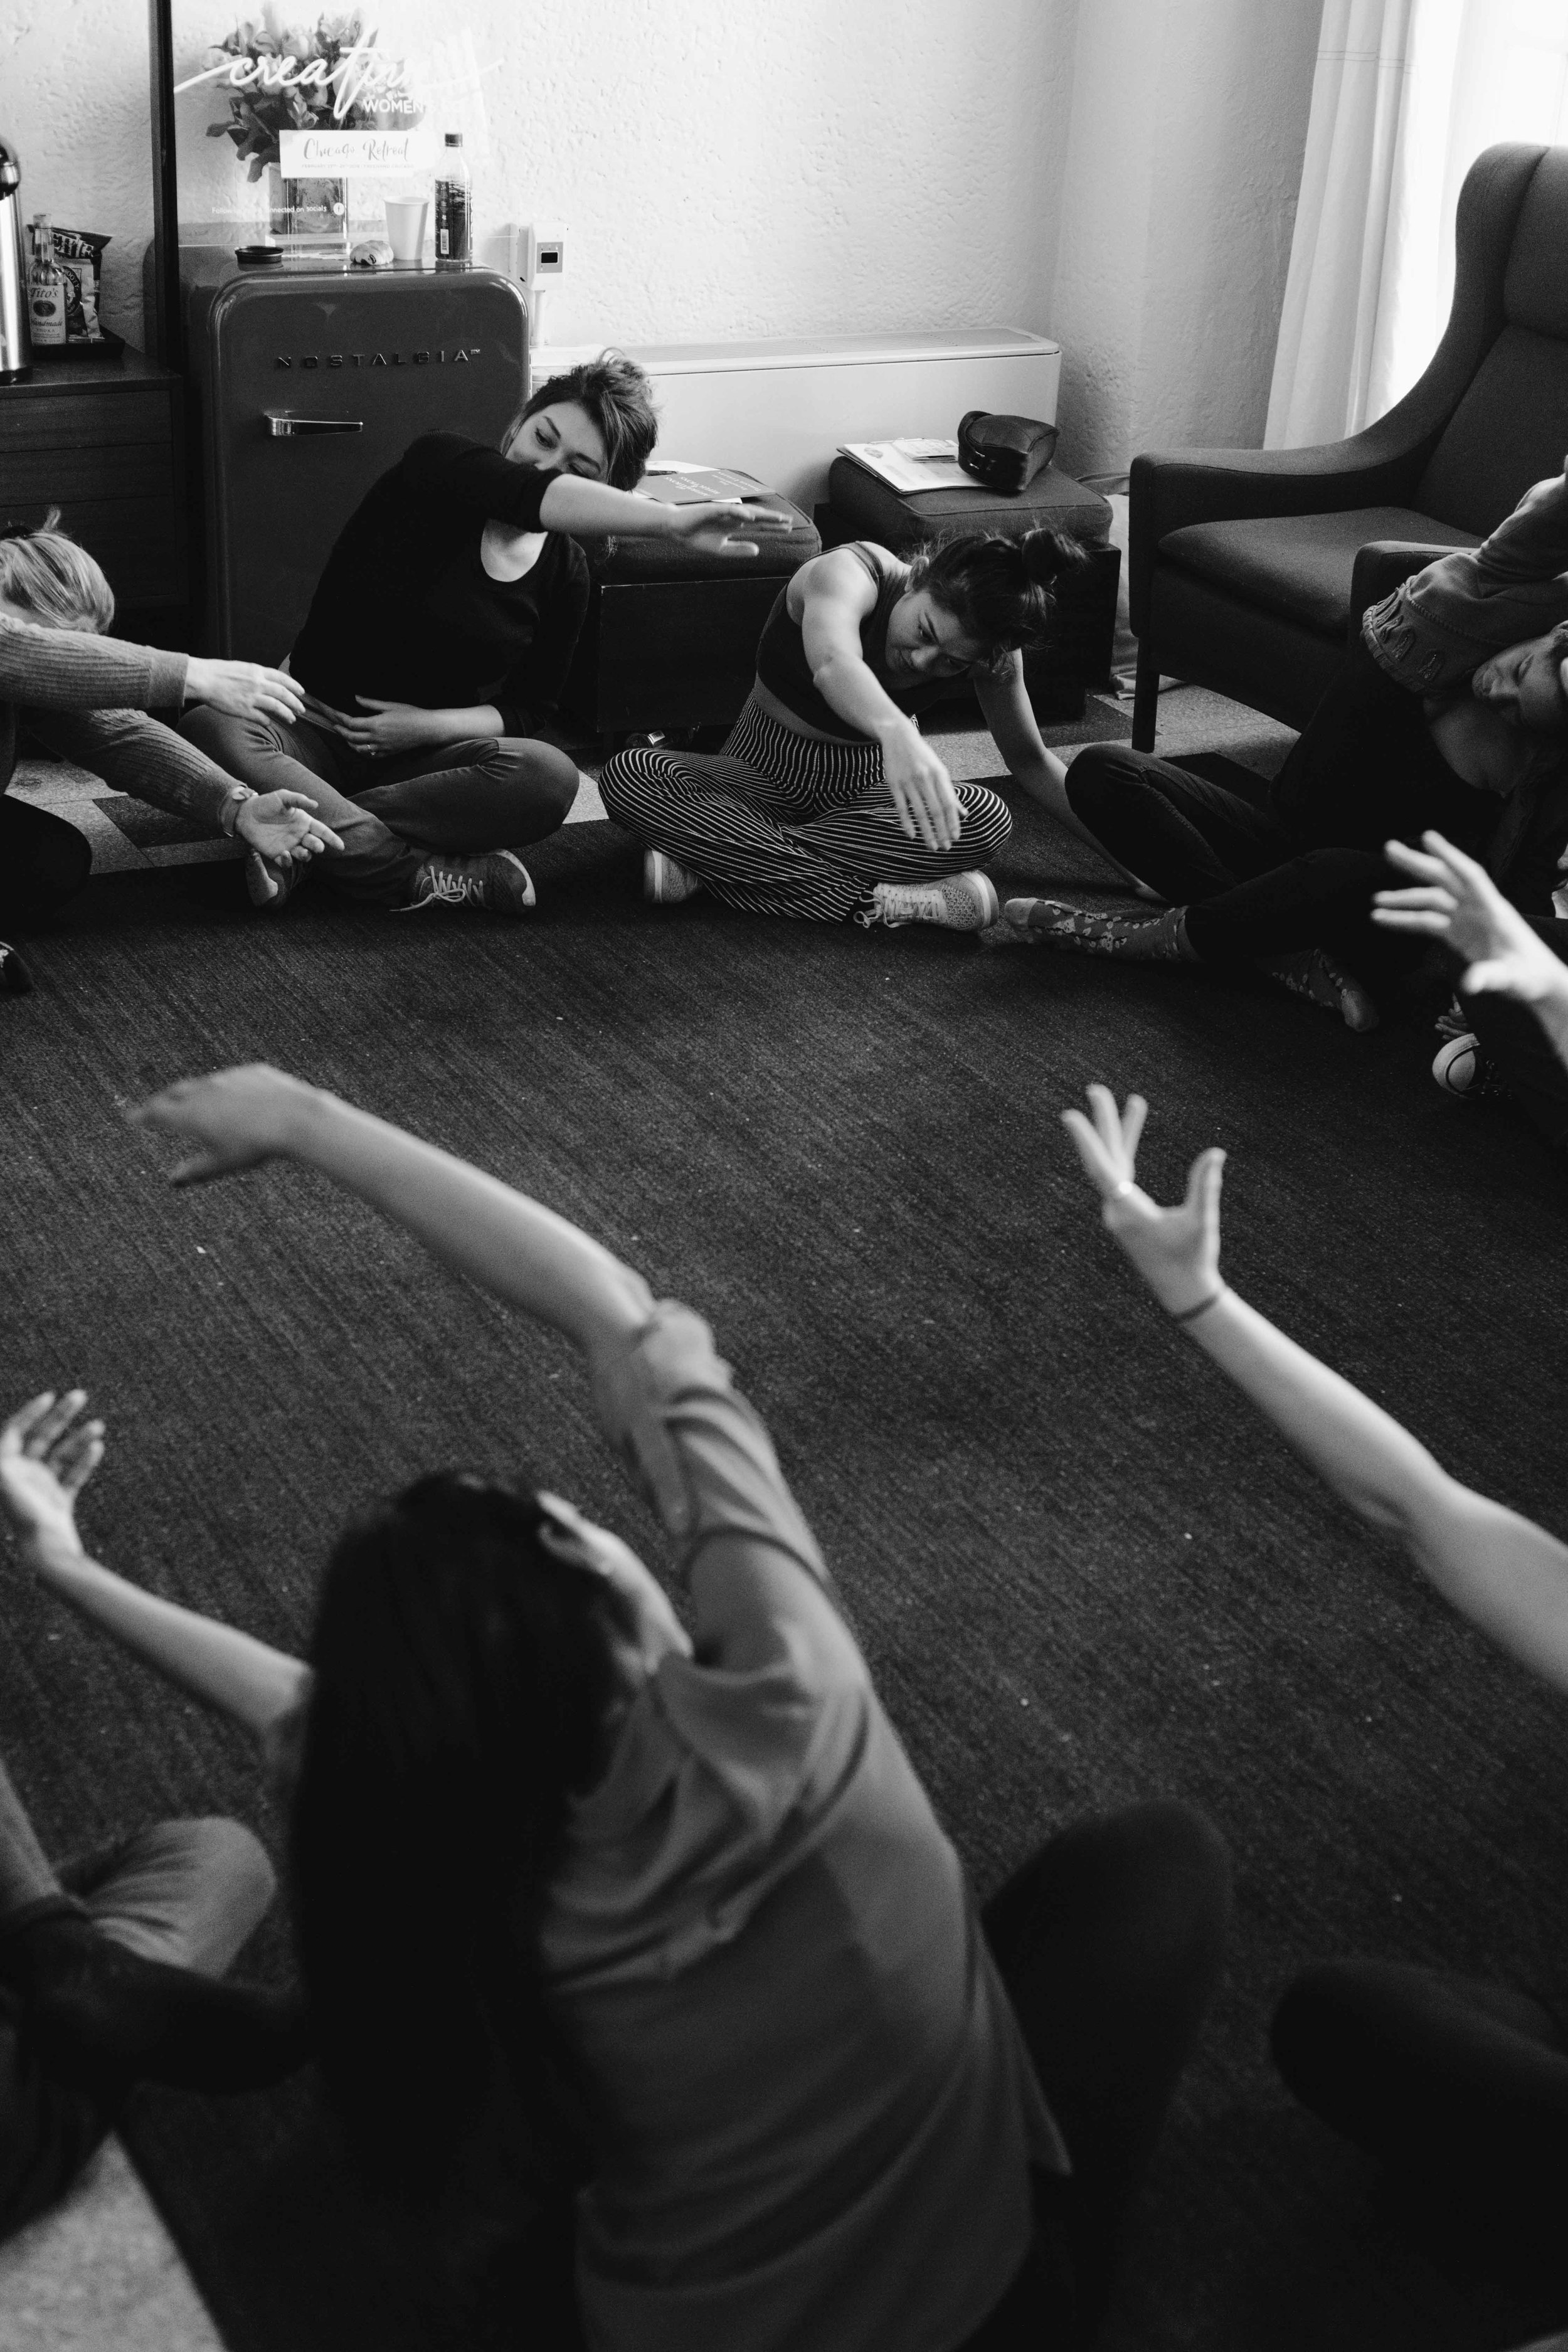 Dance class taught by Design Dance for Creative Women's Co. Chicago Retreat at the Freehand Hotel